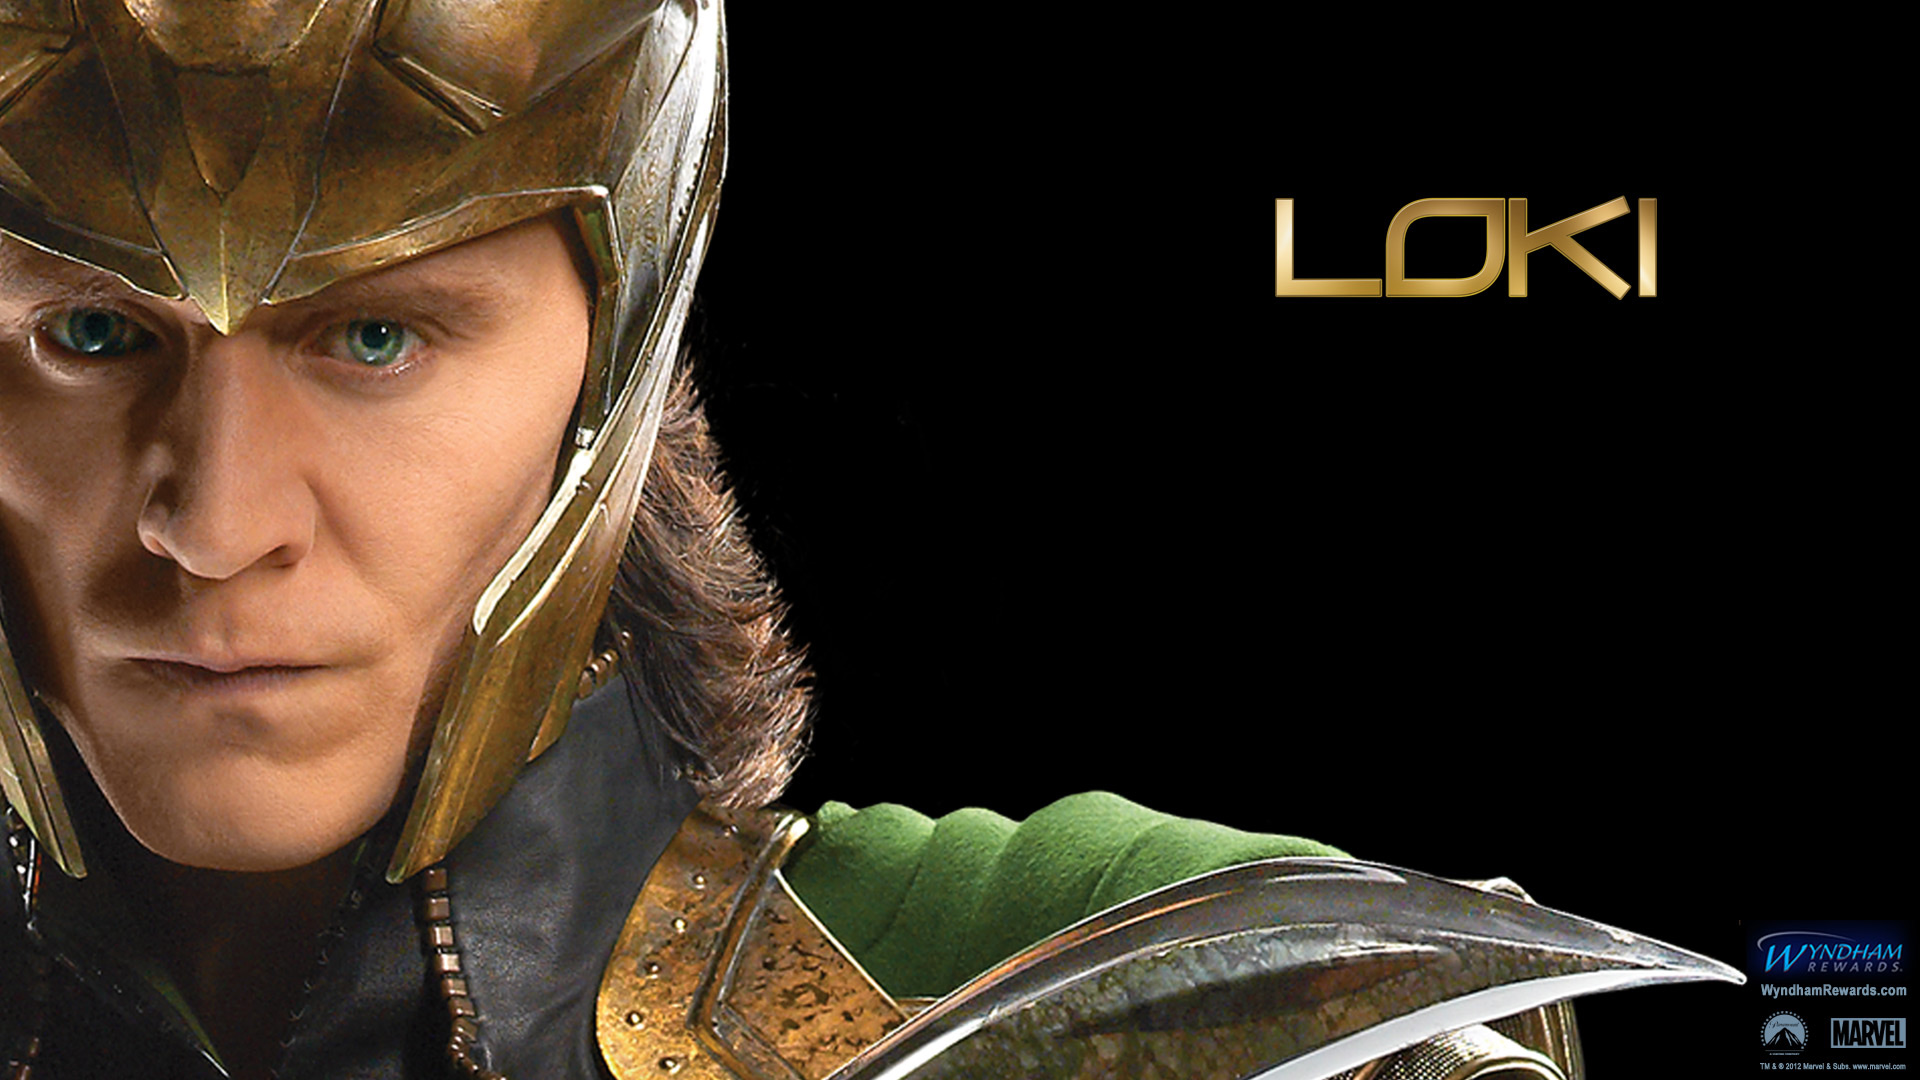 Thor The Dark World Tom Hiddleston as Loki HD desktop wallpaper 1920x1080